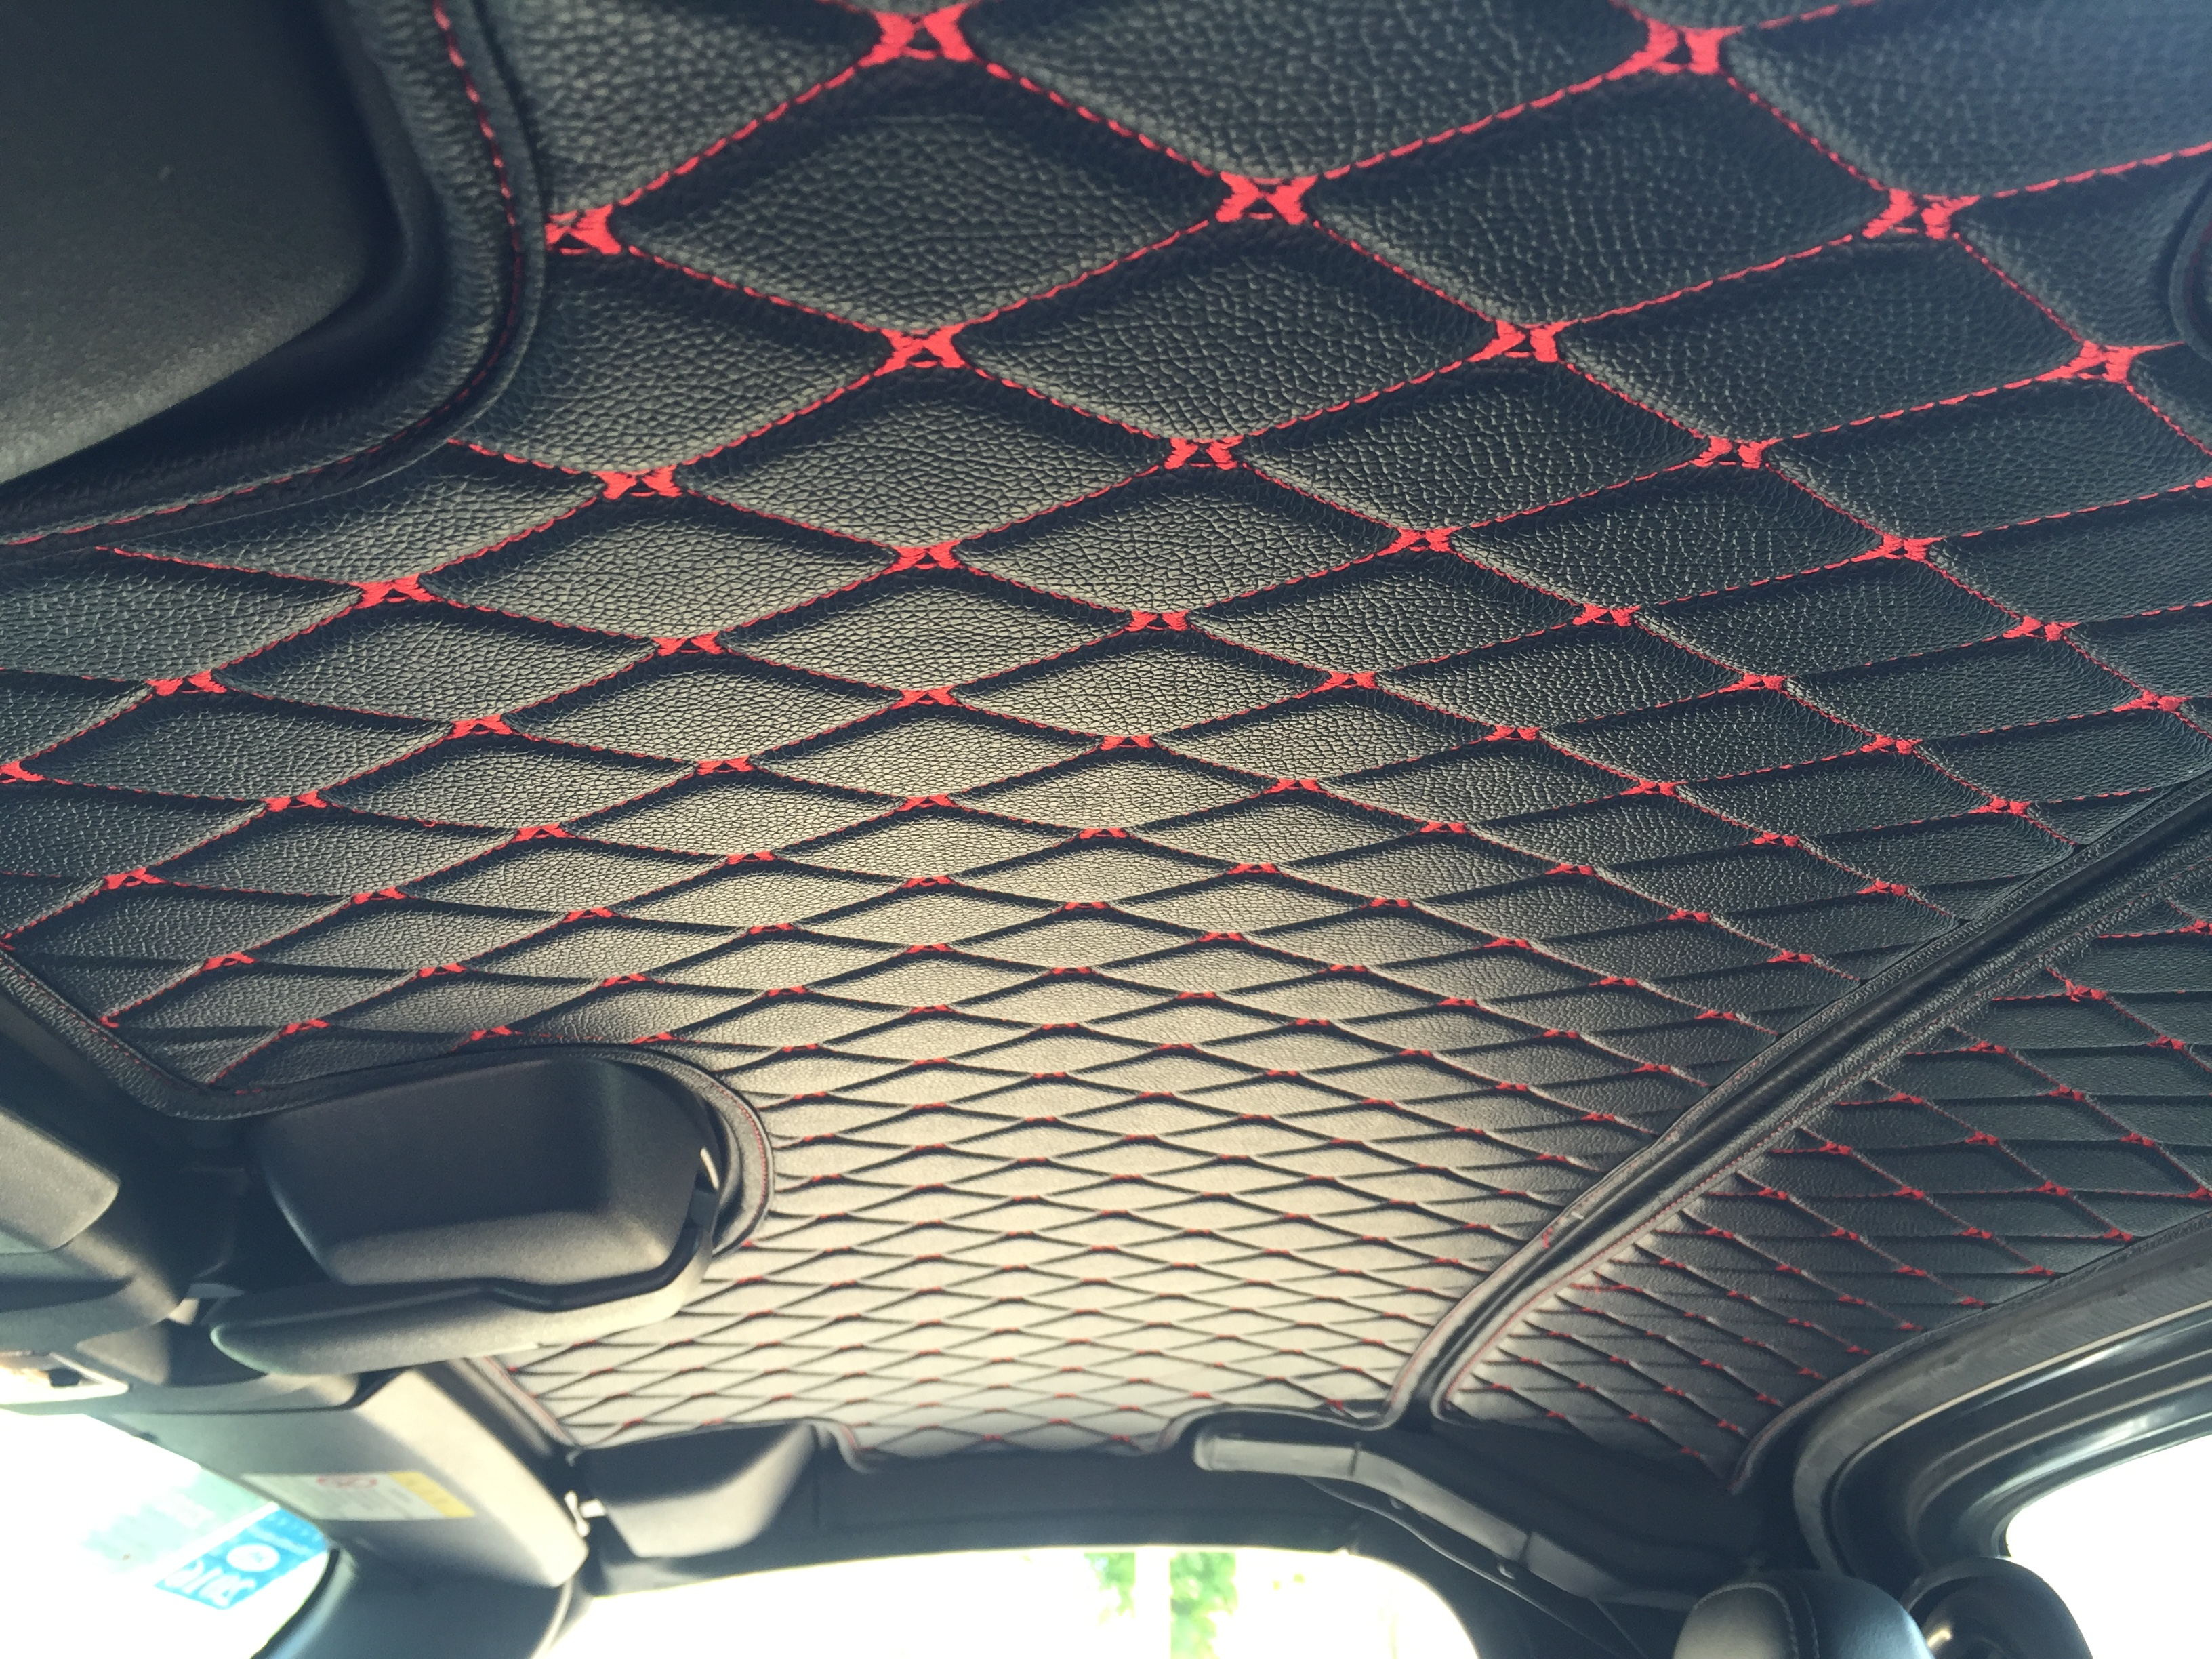 quilted hardtop headliner prht premade material the ultimate resource for mazda miata parts. Black Bedroom Furniture Sets. Home Design Ideas